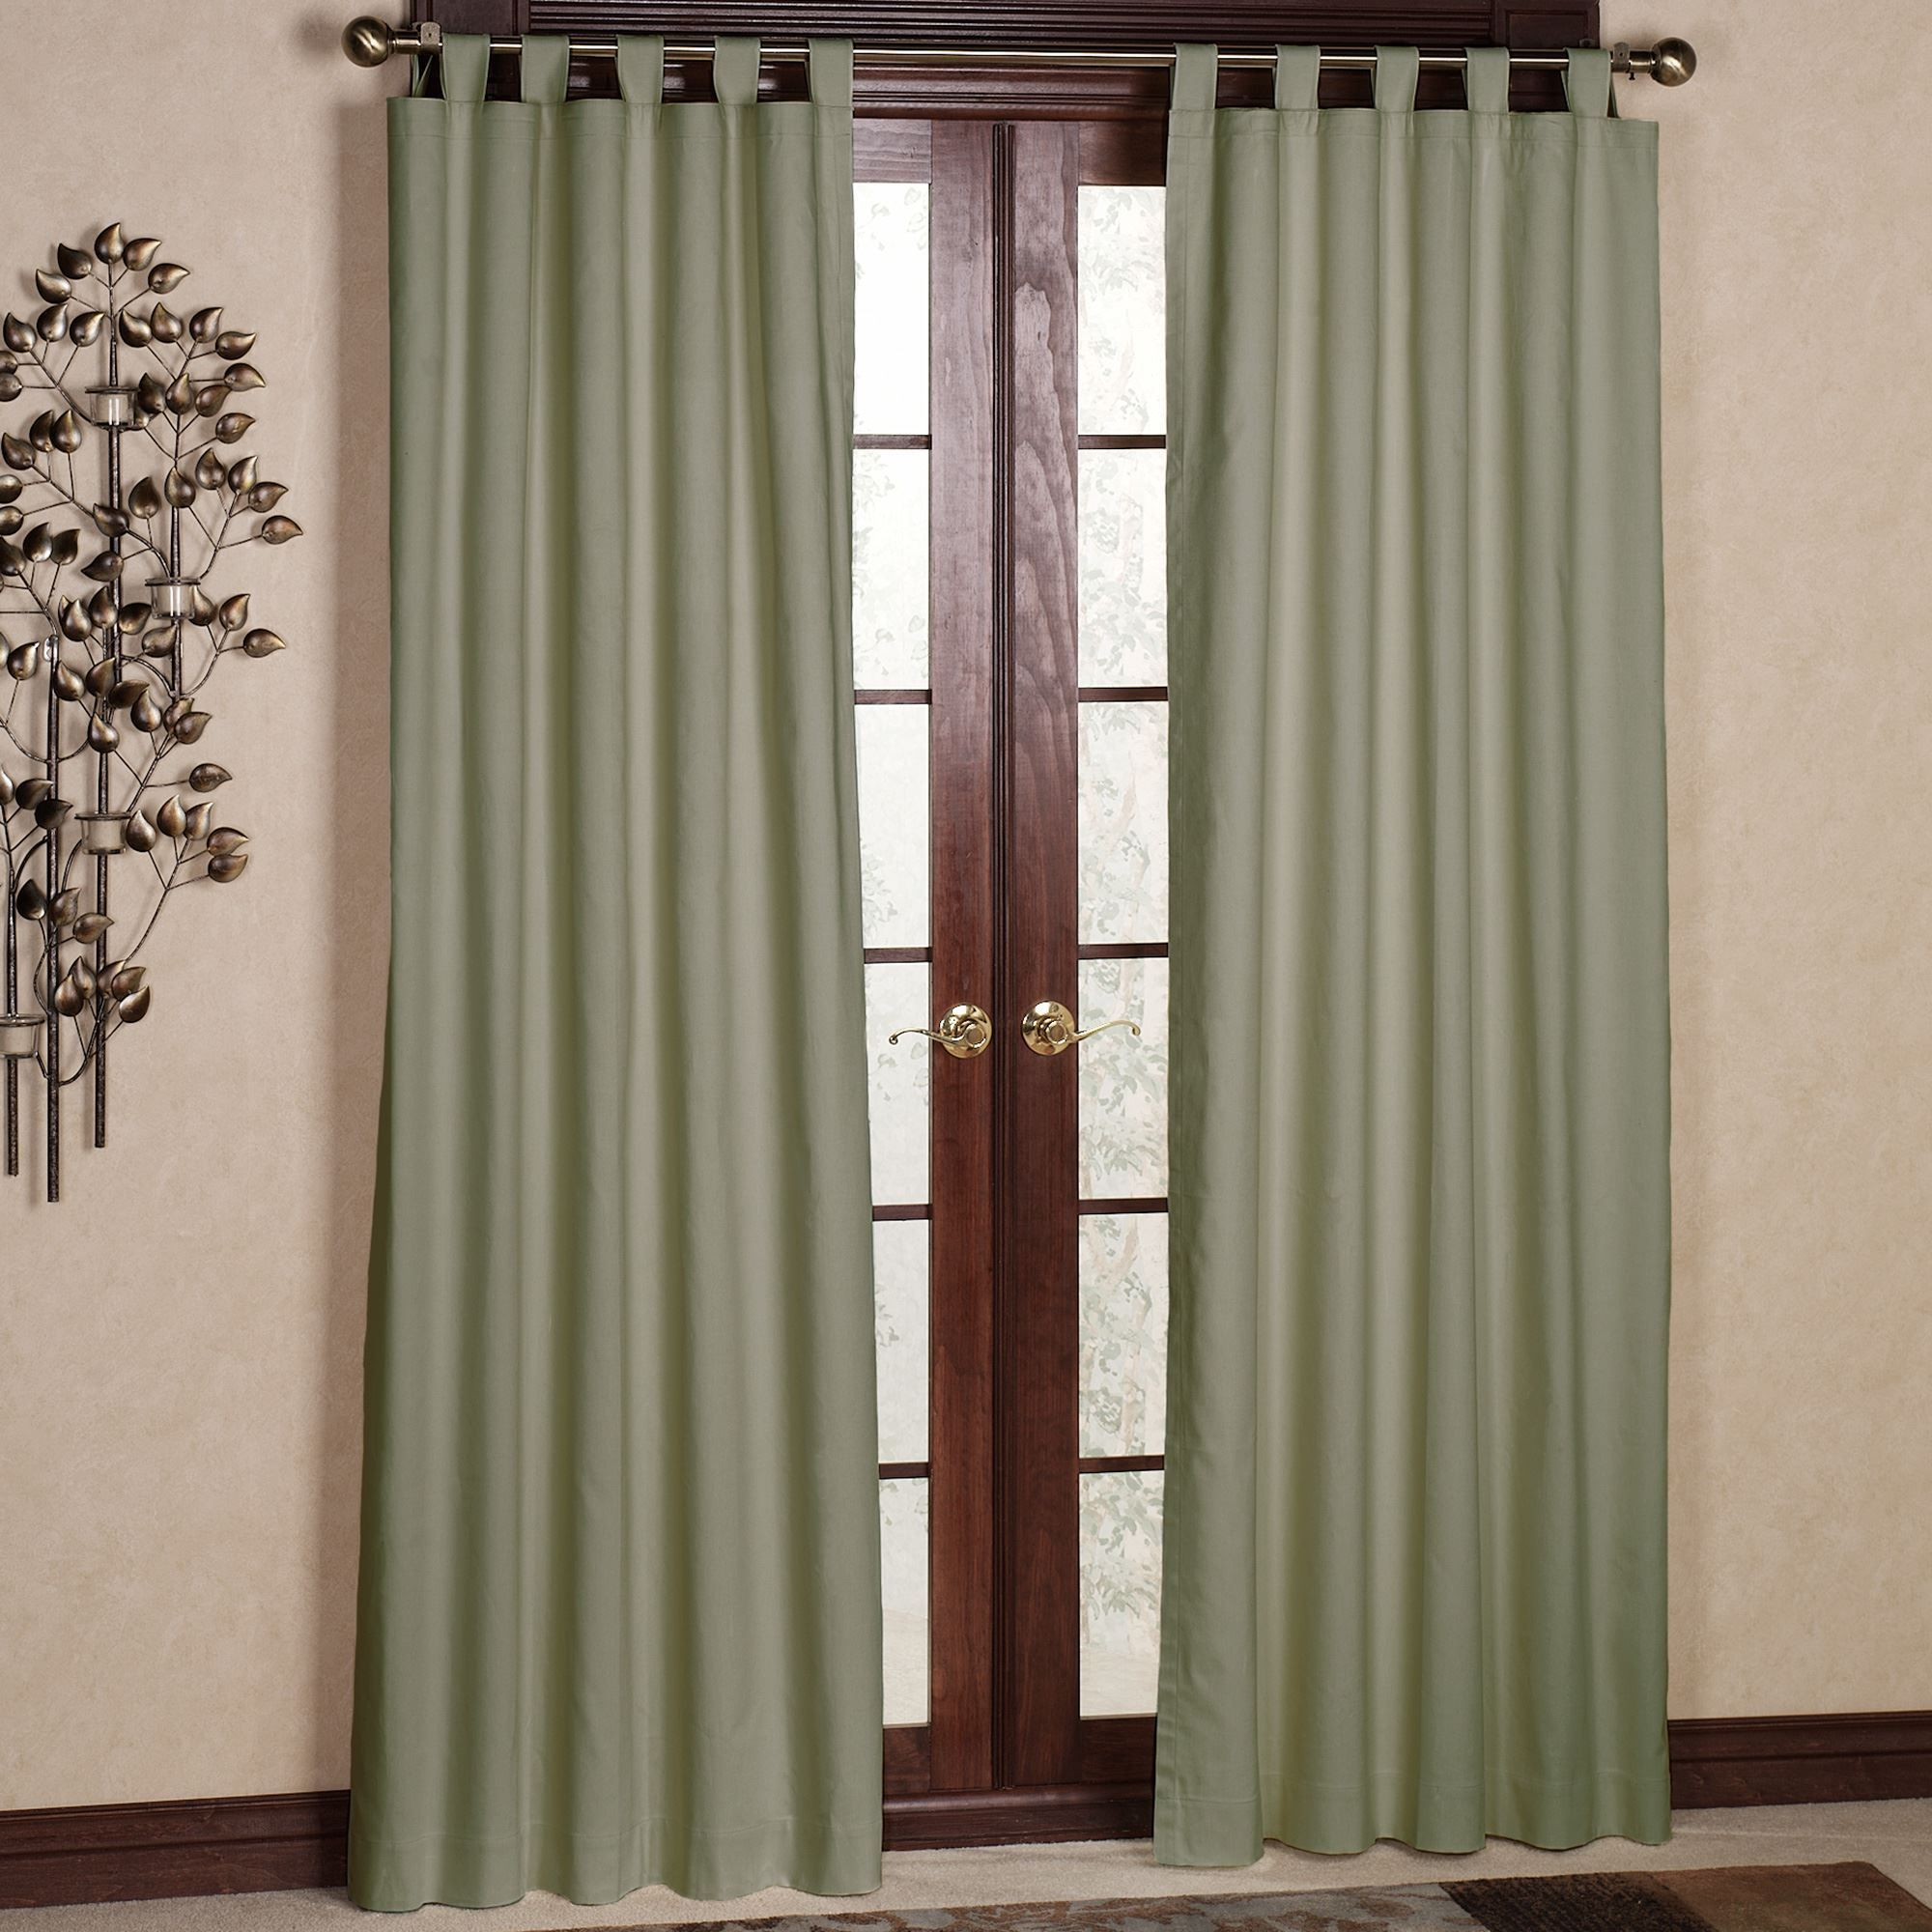 Room Design On Tab Curtains Best Place To Blackout Lining For Top